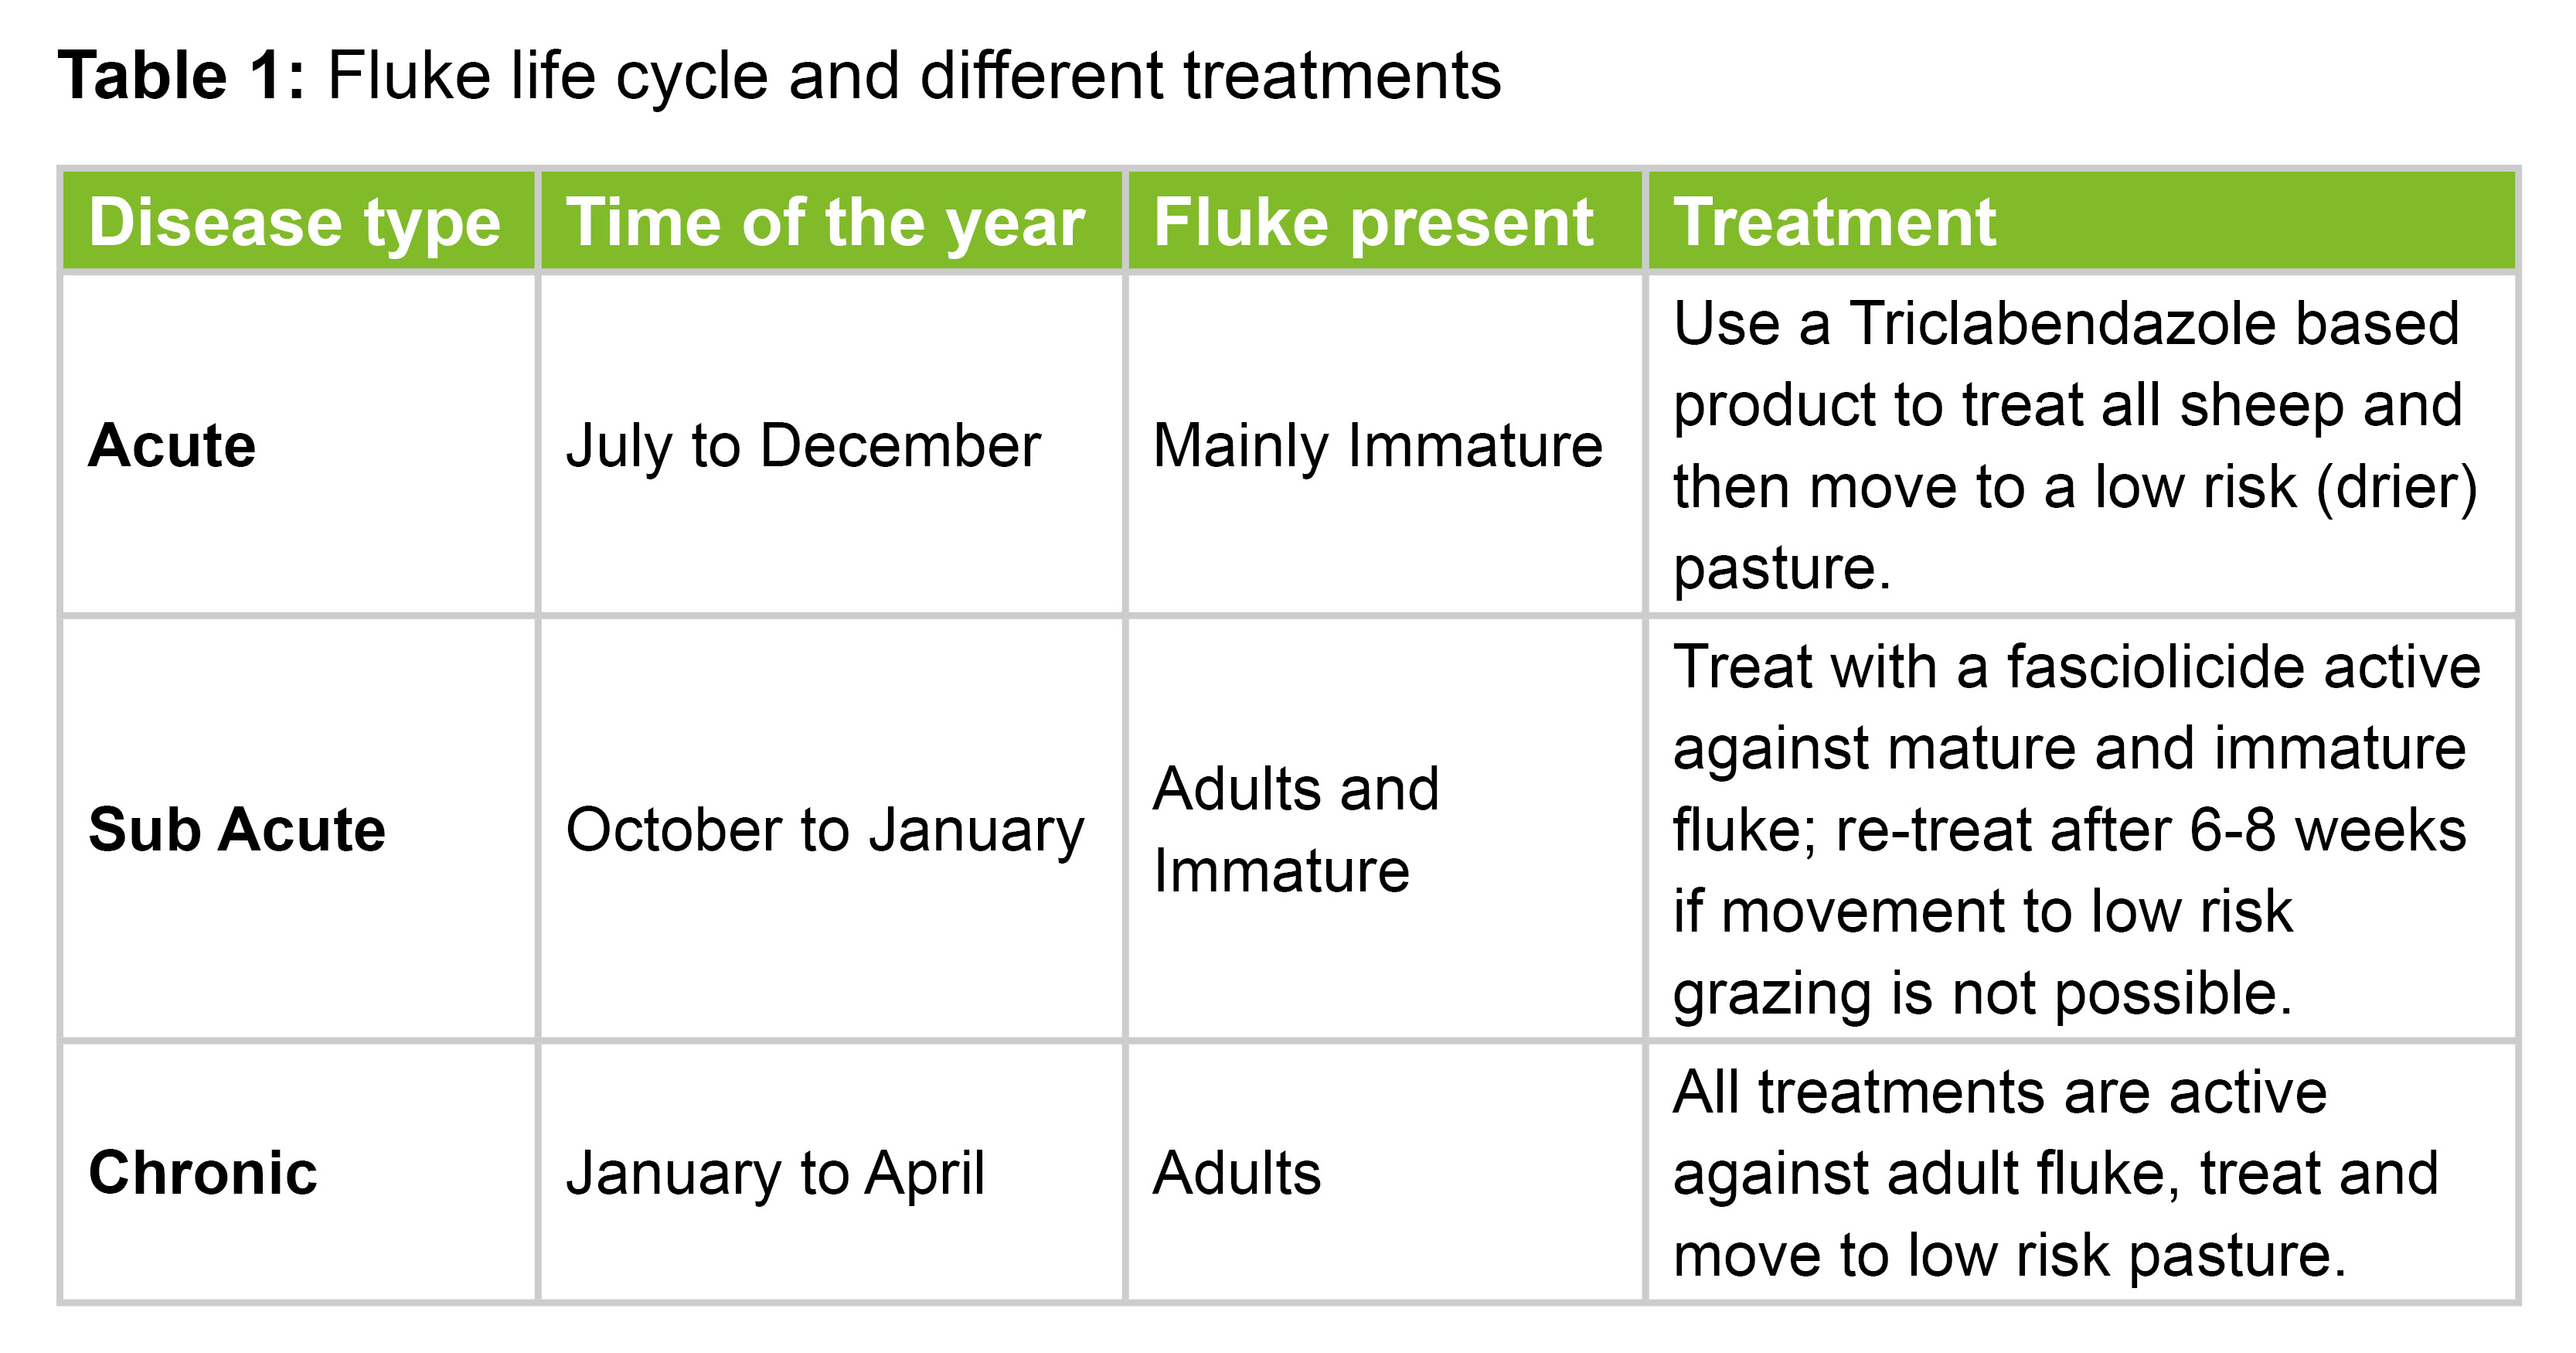 Fluke Life cycle and different treatments